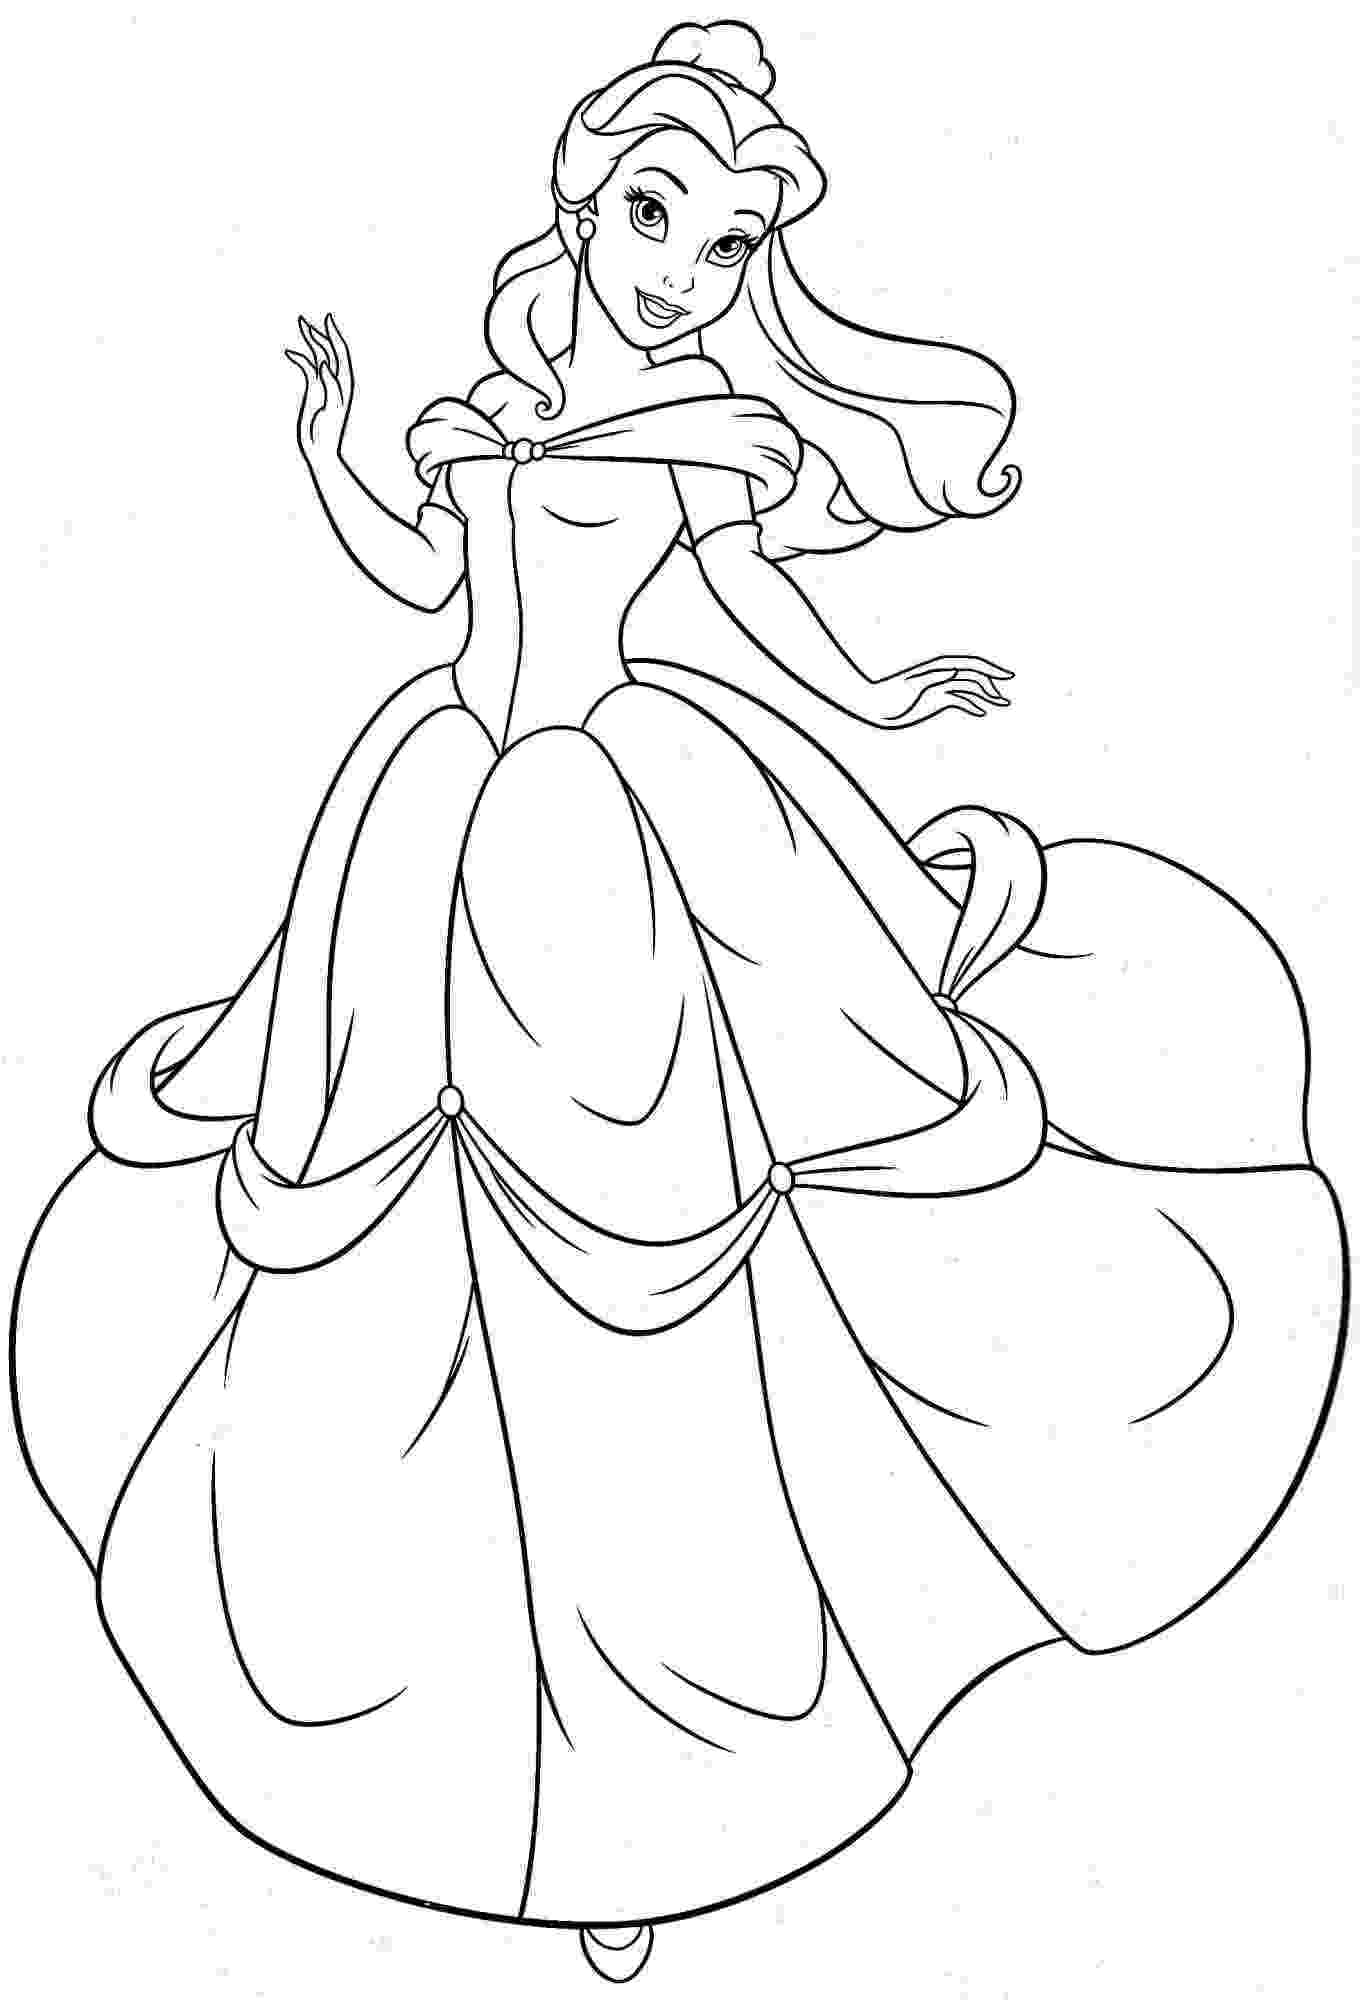 free disney princess coloring pages princess belle coloring pages to download and print for free pages disney princess coloring free